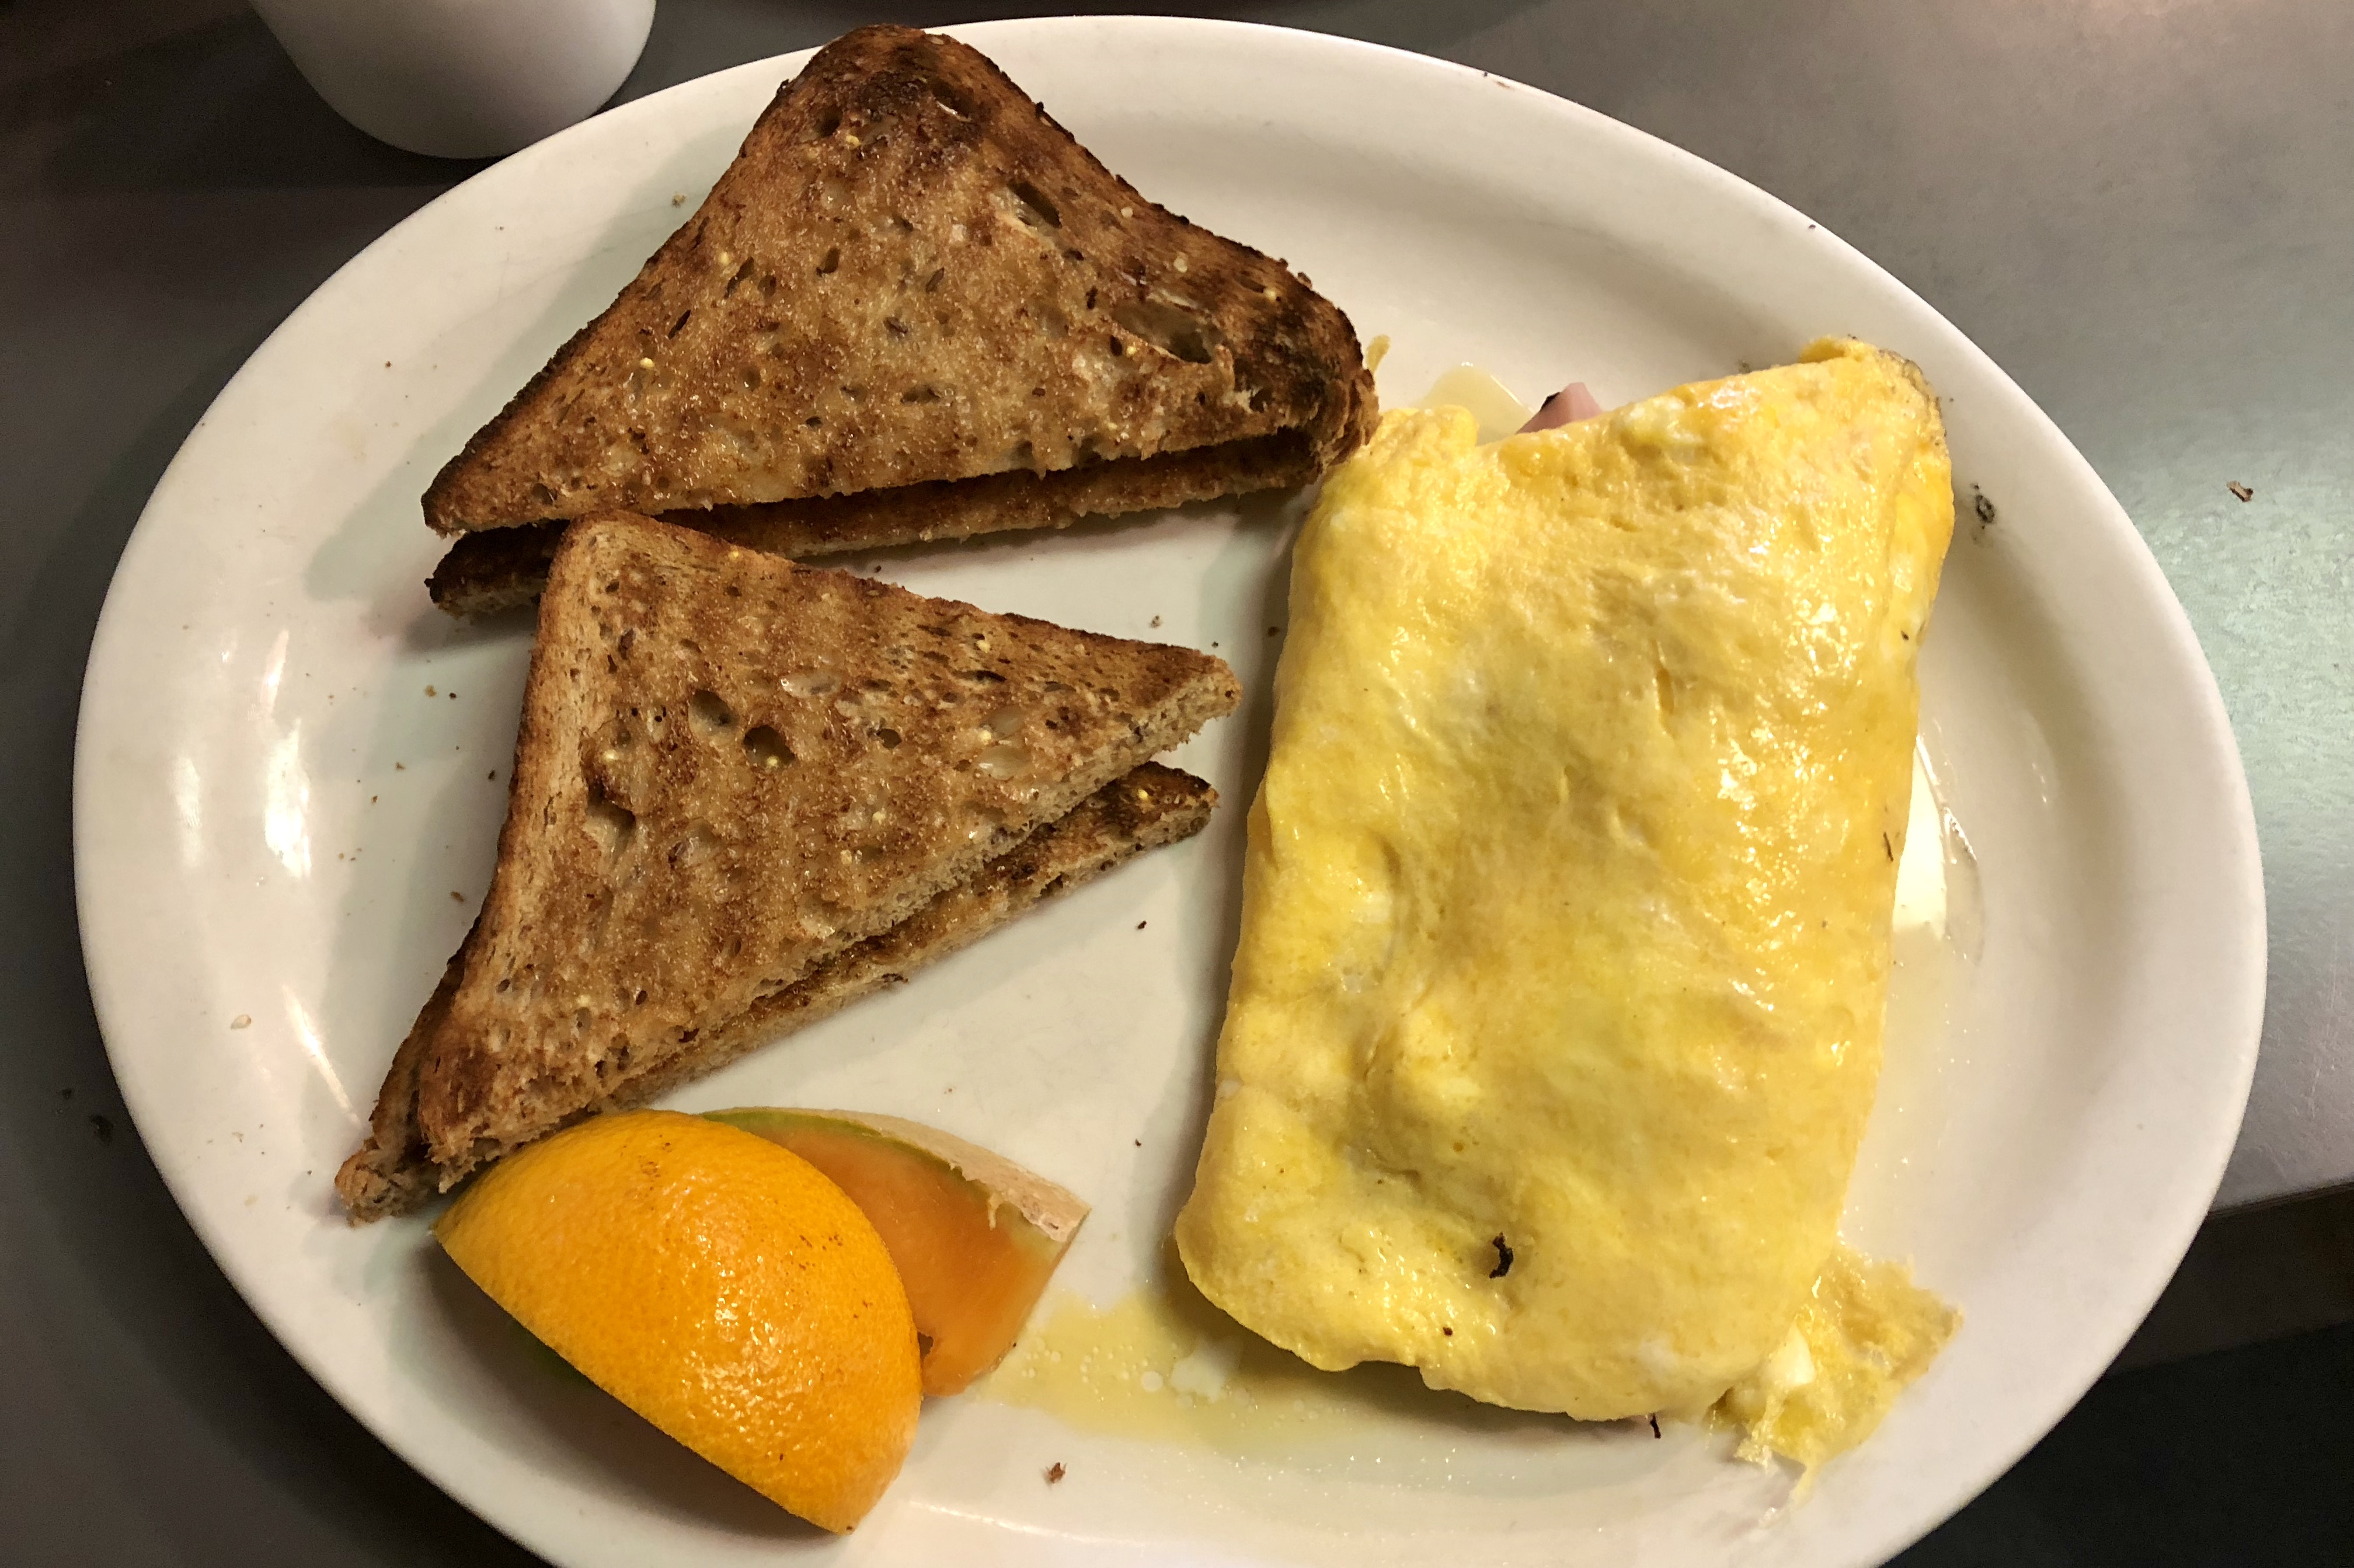 3-Egg Omelette with Ham & Cheese